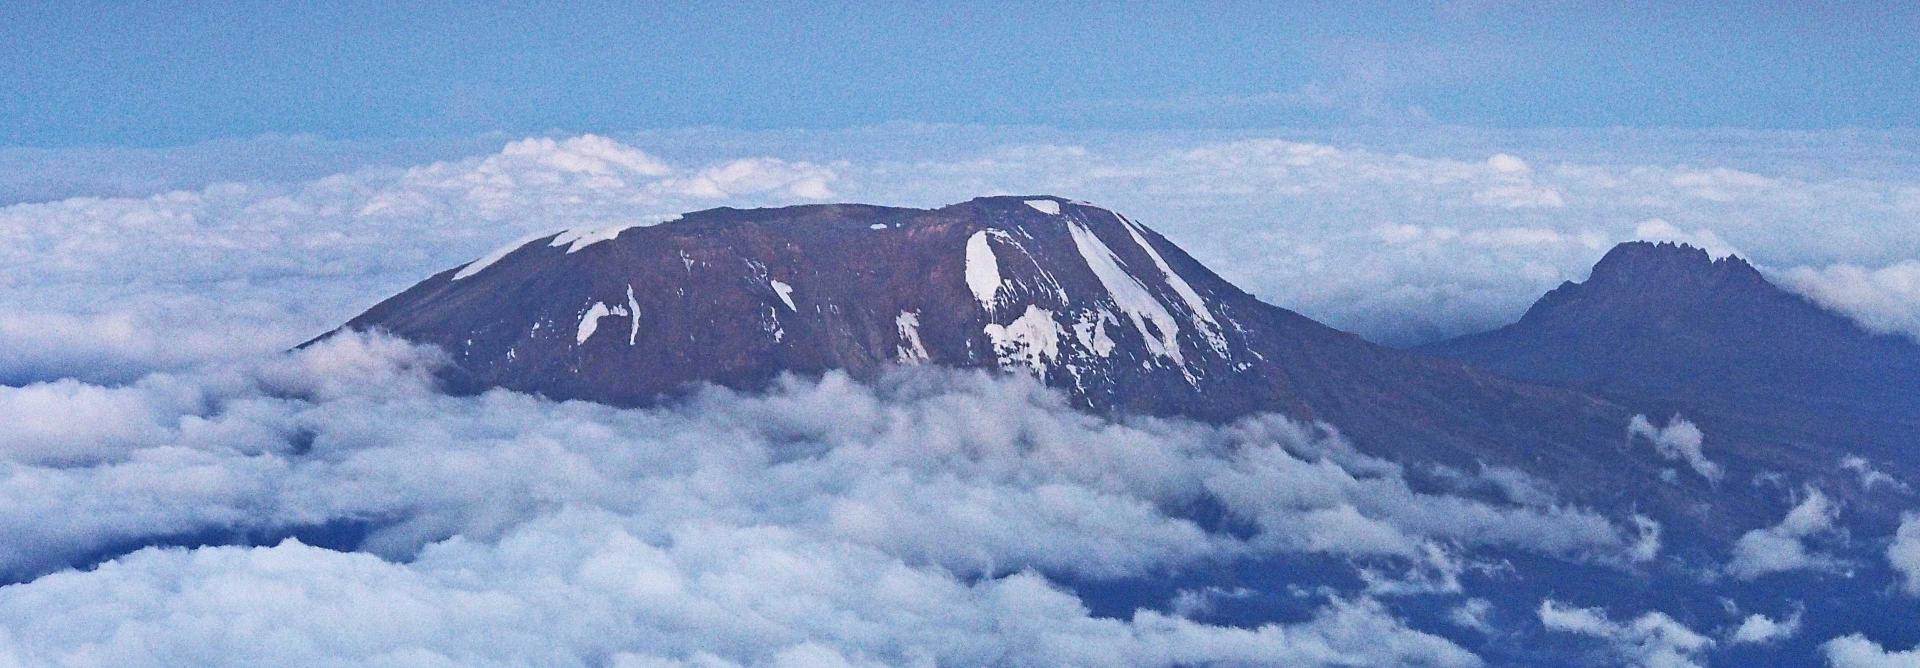 Kilimanjaro Mountain Charity Trek in Tanzania in Africa. Highest Freestanding Mountain in the world